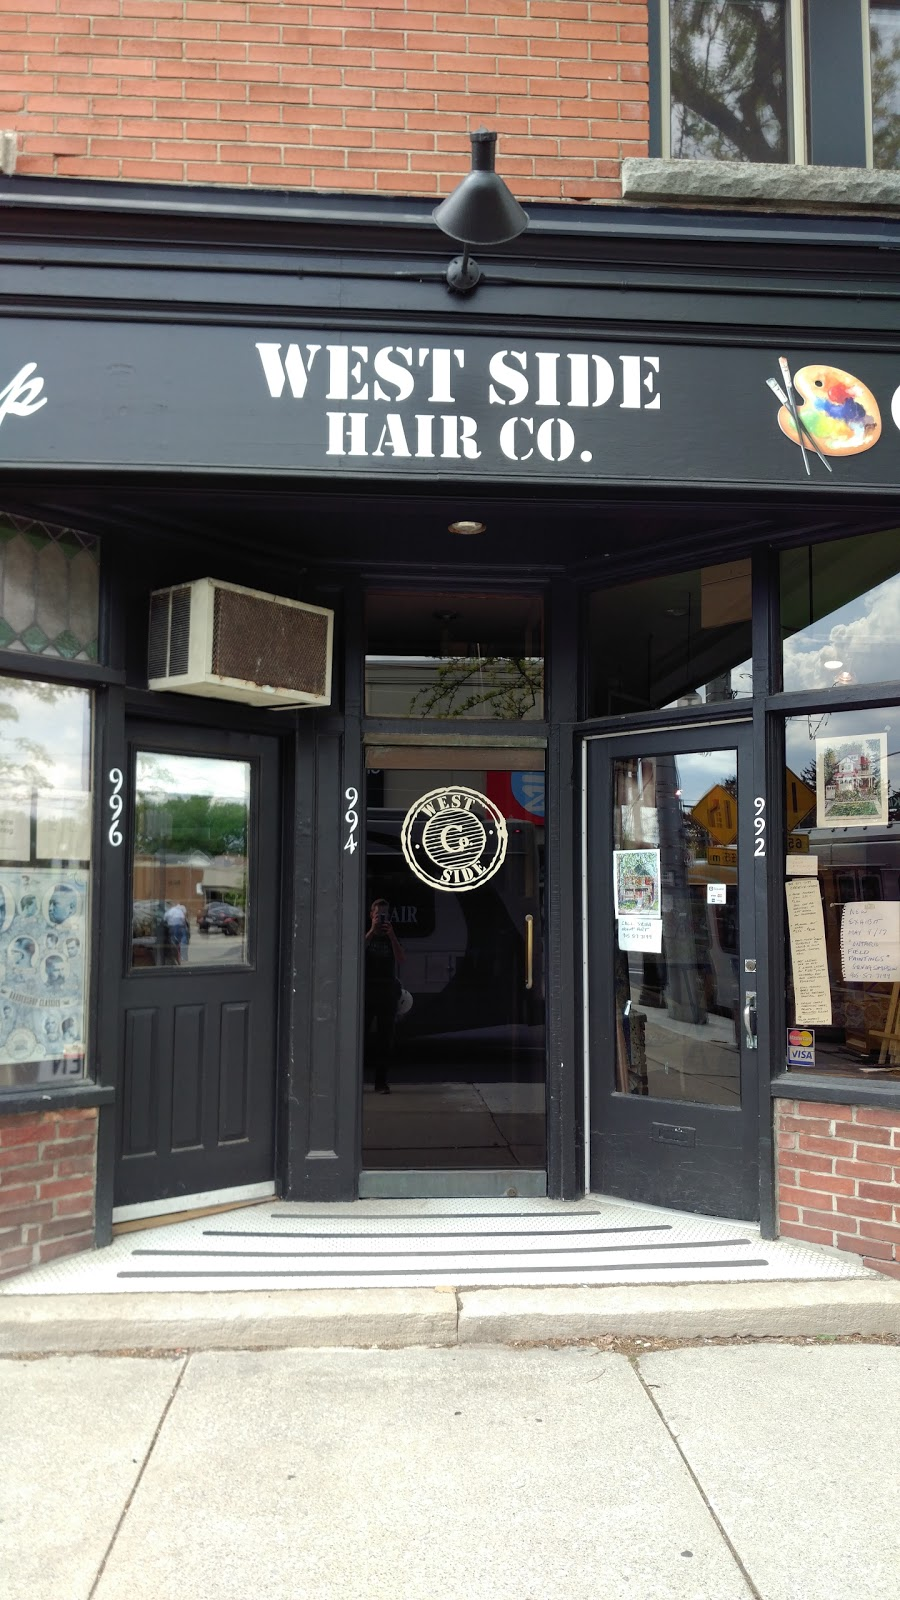 West Side Hair Co | hair care | 994 King St W, Hamilton, ON L8S 1L1, Canada | 9055215771 OR +1 905-521-5771